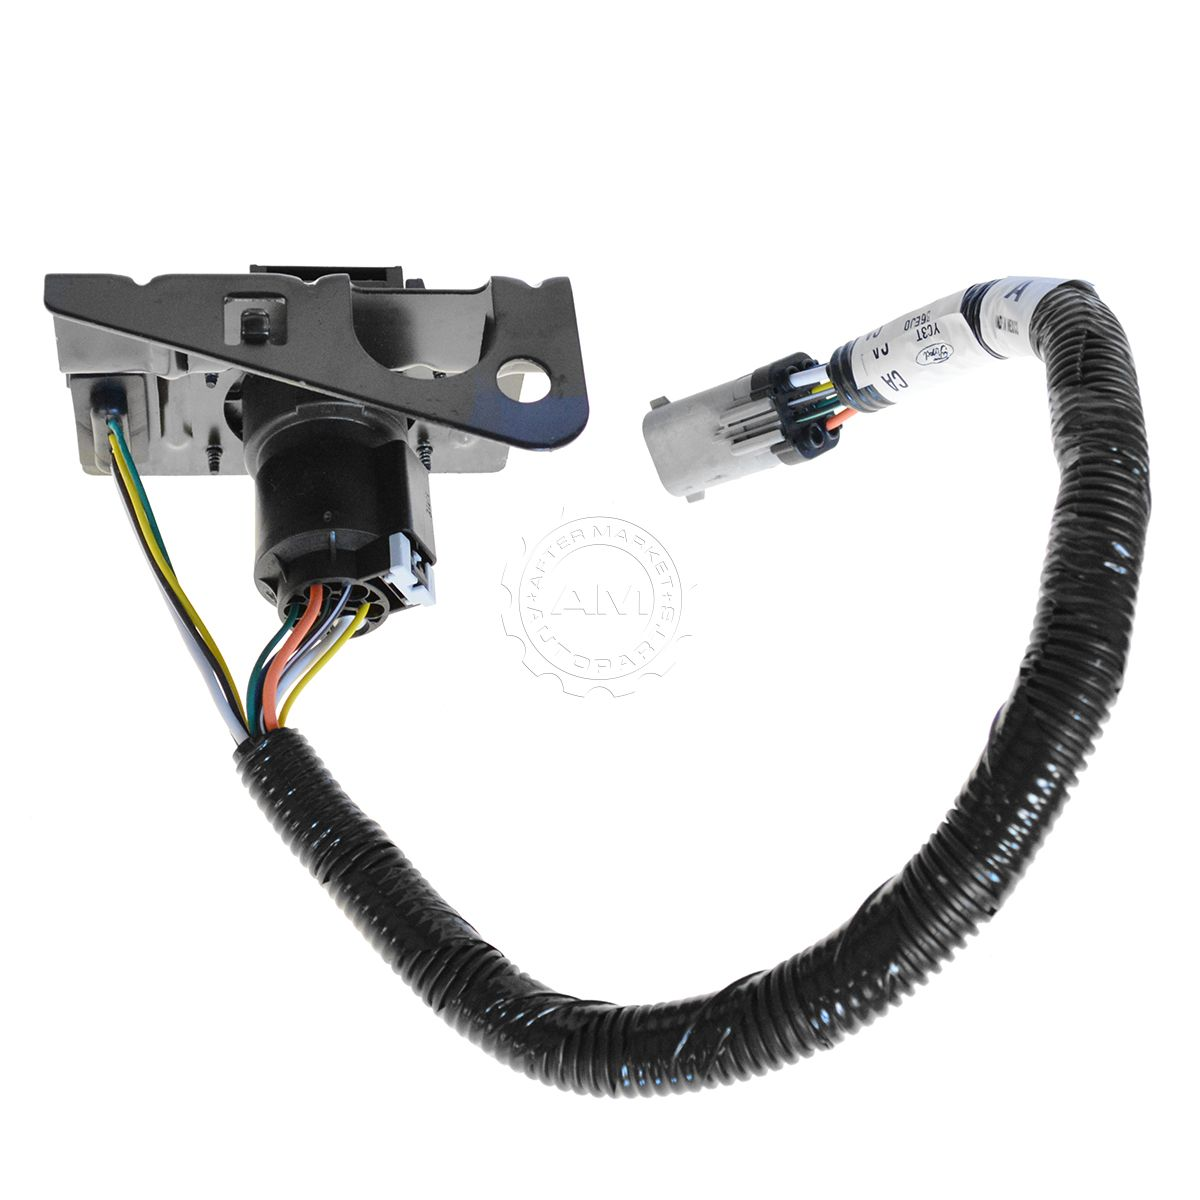 ford 4 7 pin trailer tow wiring harness w plug bracket for f250 rh ebay com ford explorer trailer wiring adapter Ford F-350 Trailer Wiring Diagram